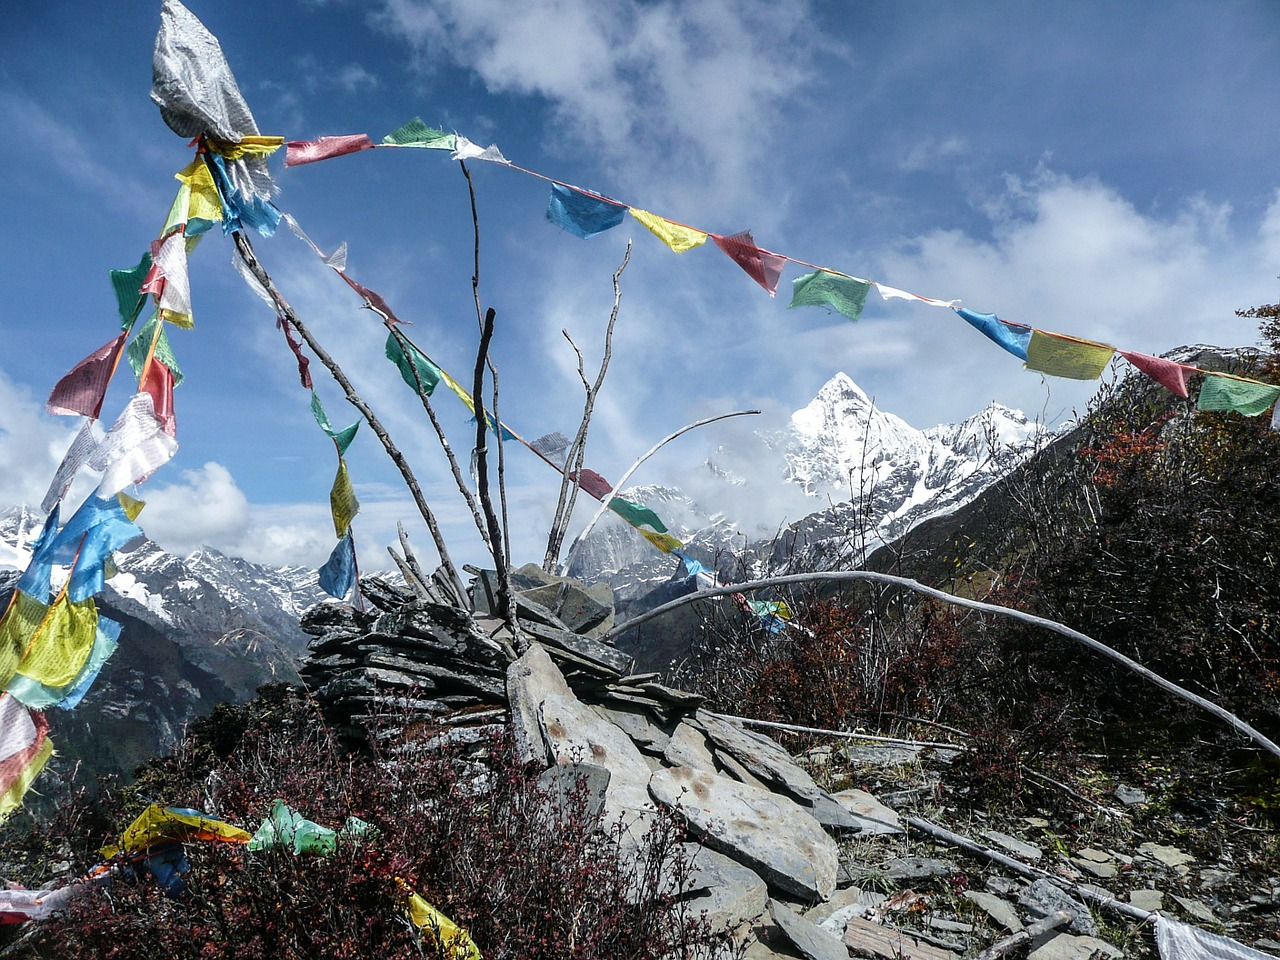 Himalayas with Tibetan prayer flags in foreground